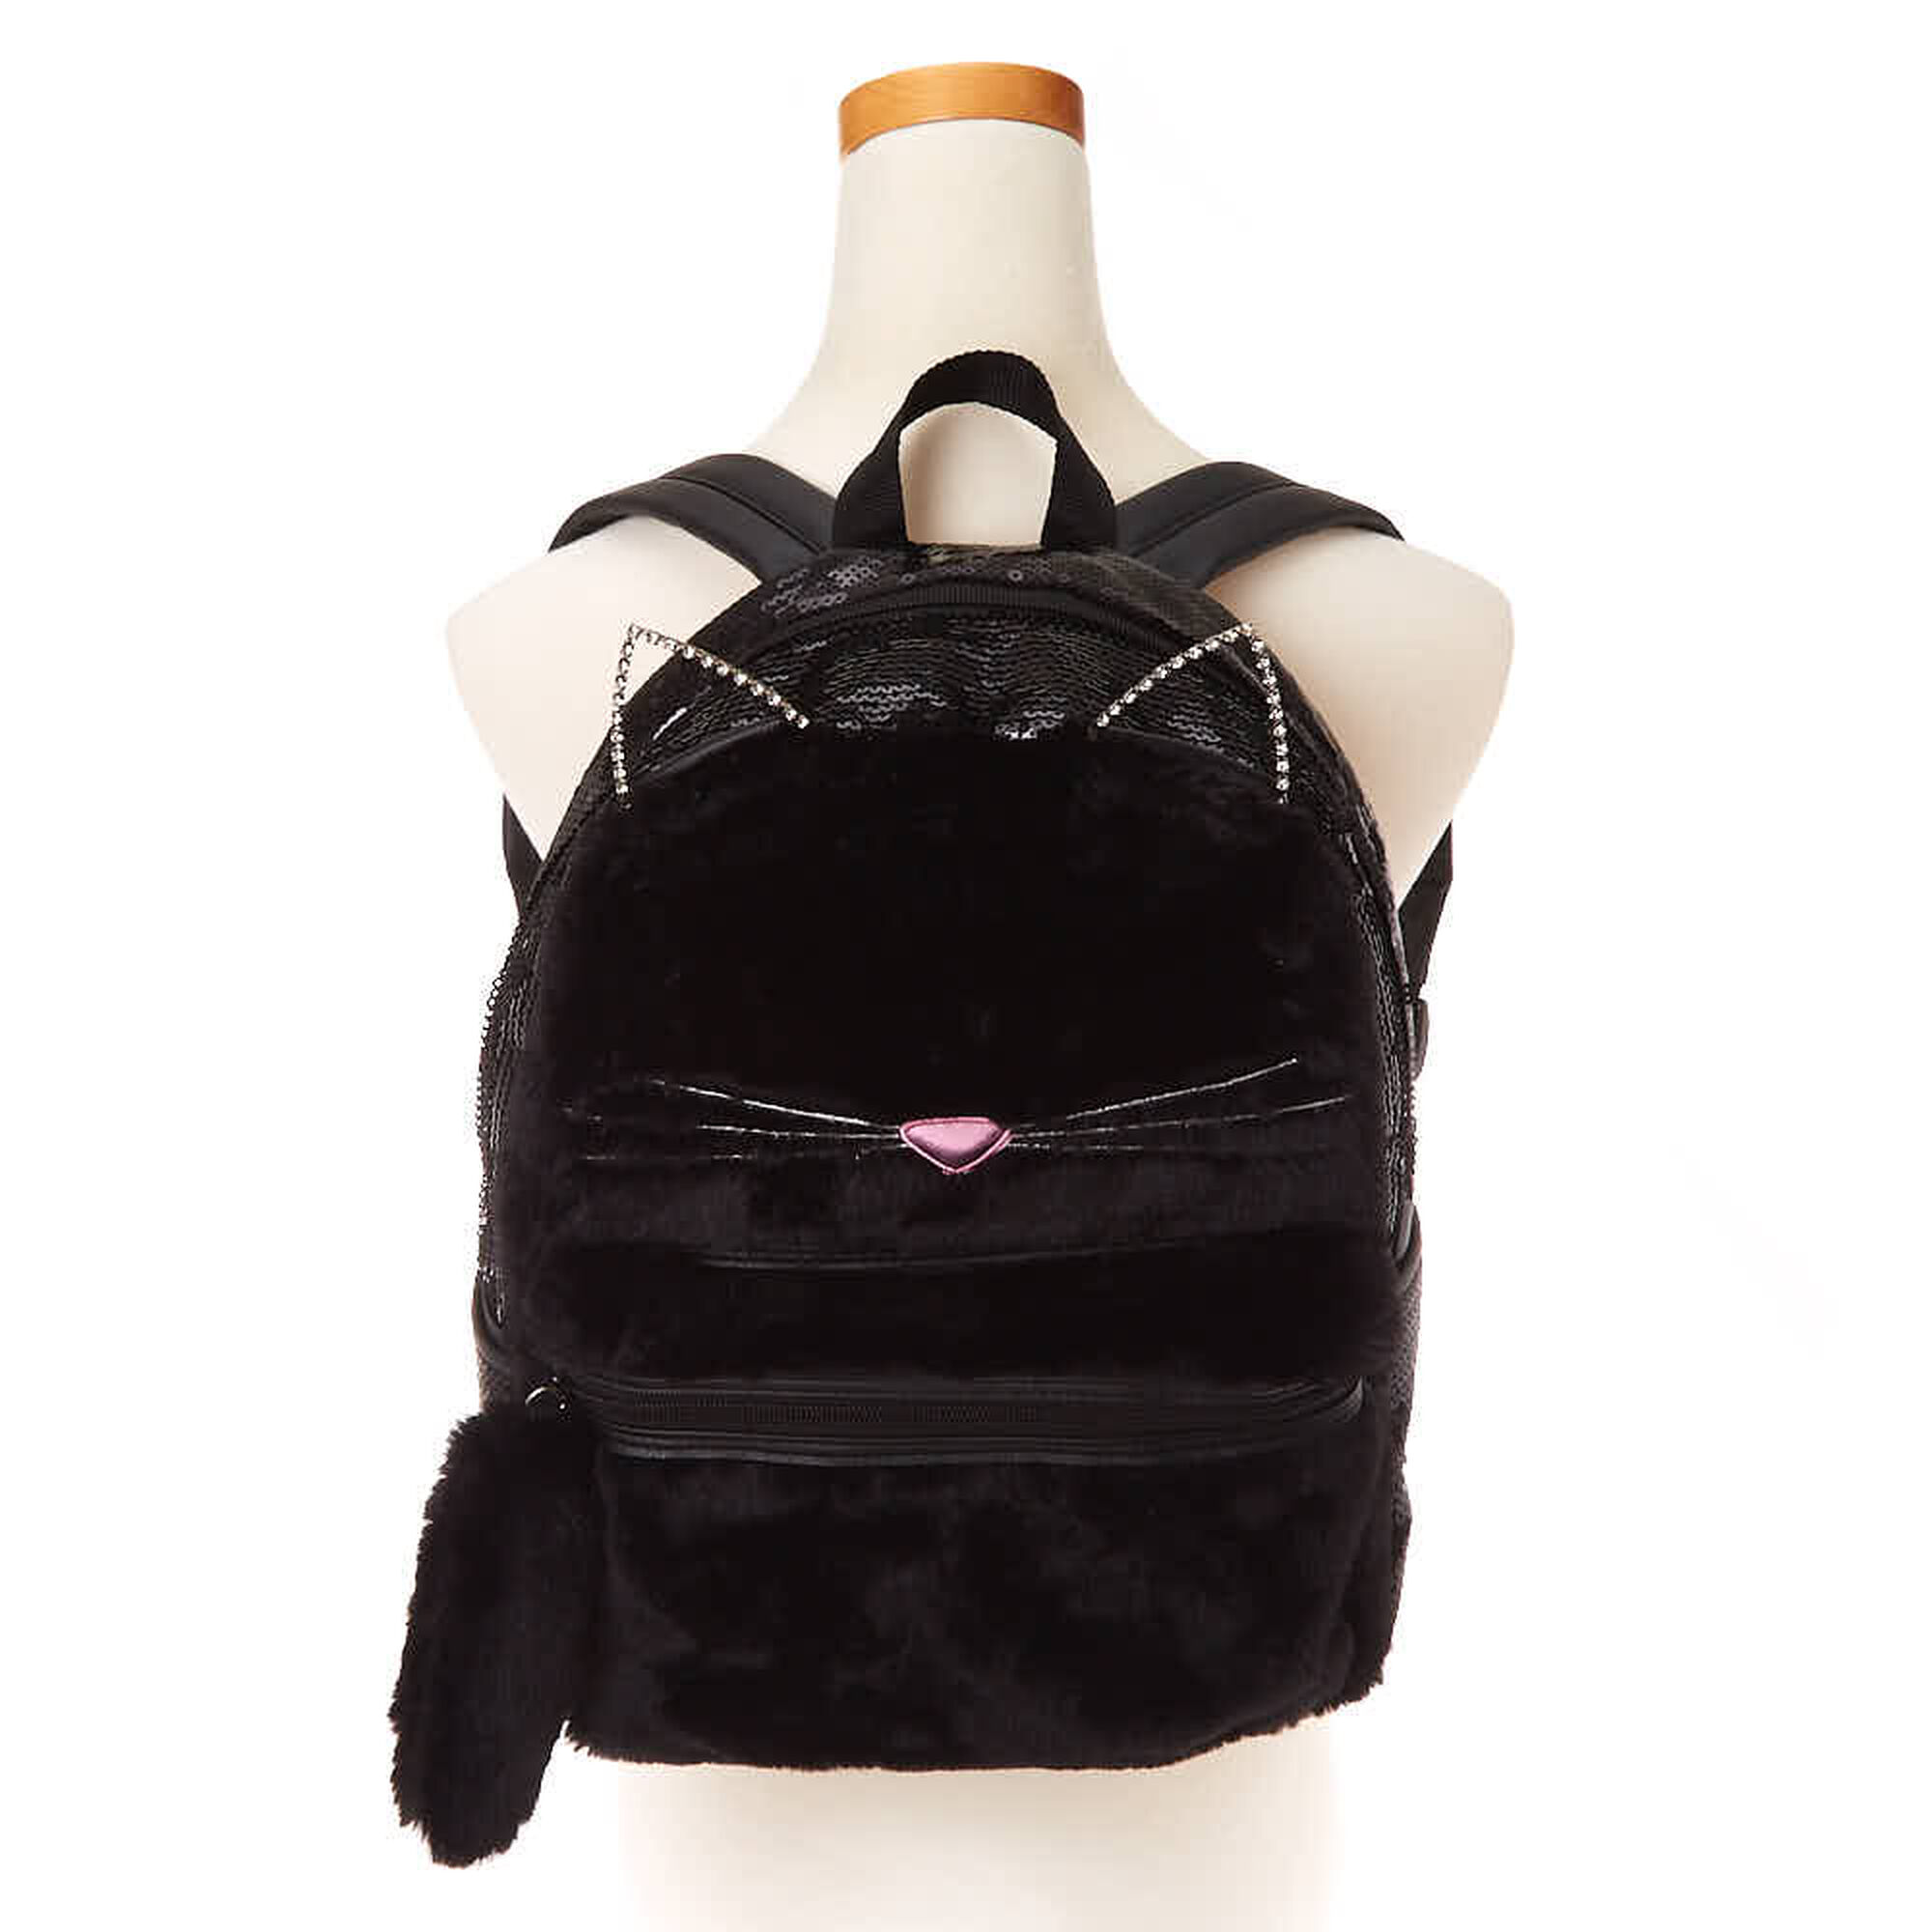 94958efac2d5c1 Fuzzy Sequin Cat Backpack - Black | Claire's US